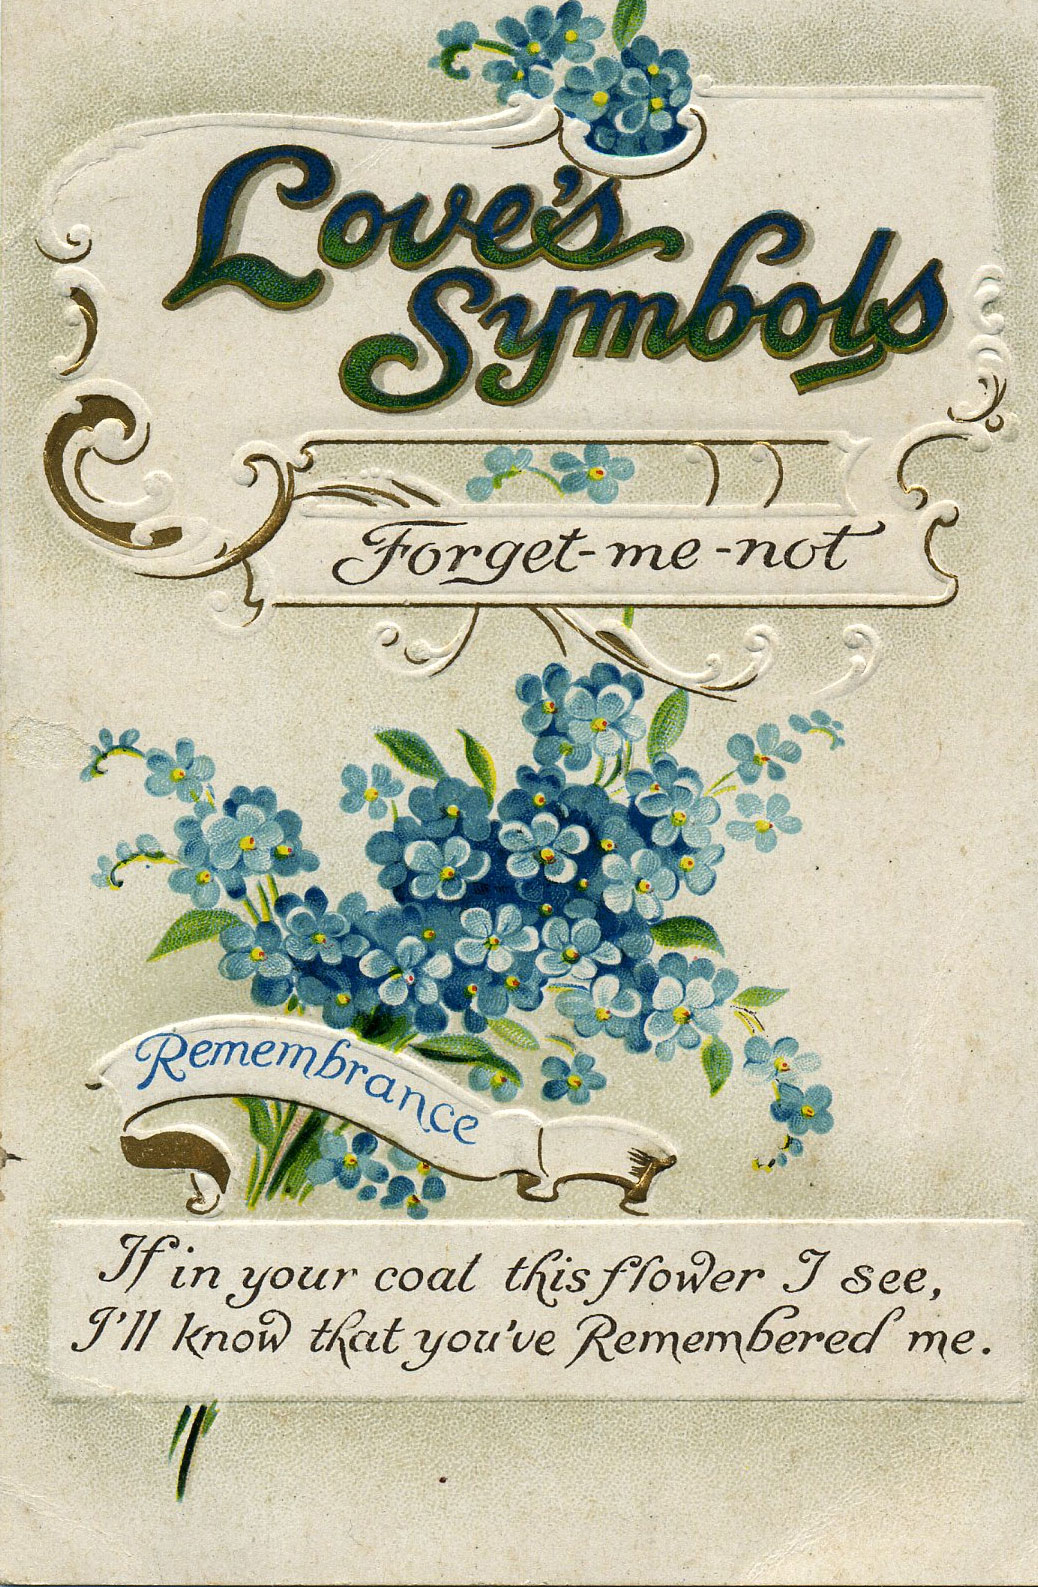 In love and remembrance the forget me not seeing symbols if in your coal this flower i see or is it coat despite having spent some time comparing the different spellings of t and l in the wording of the buycottarizona